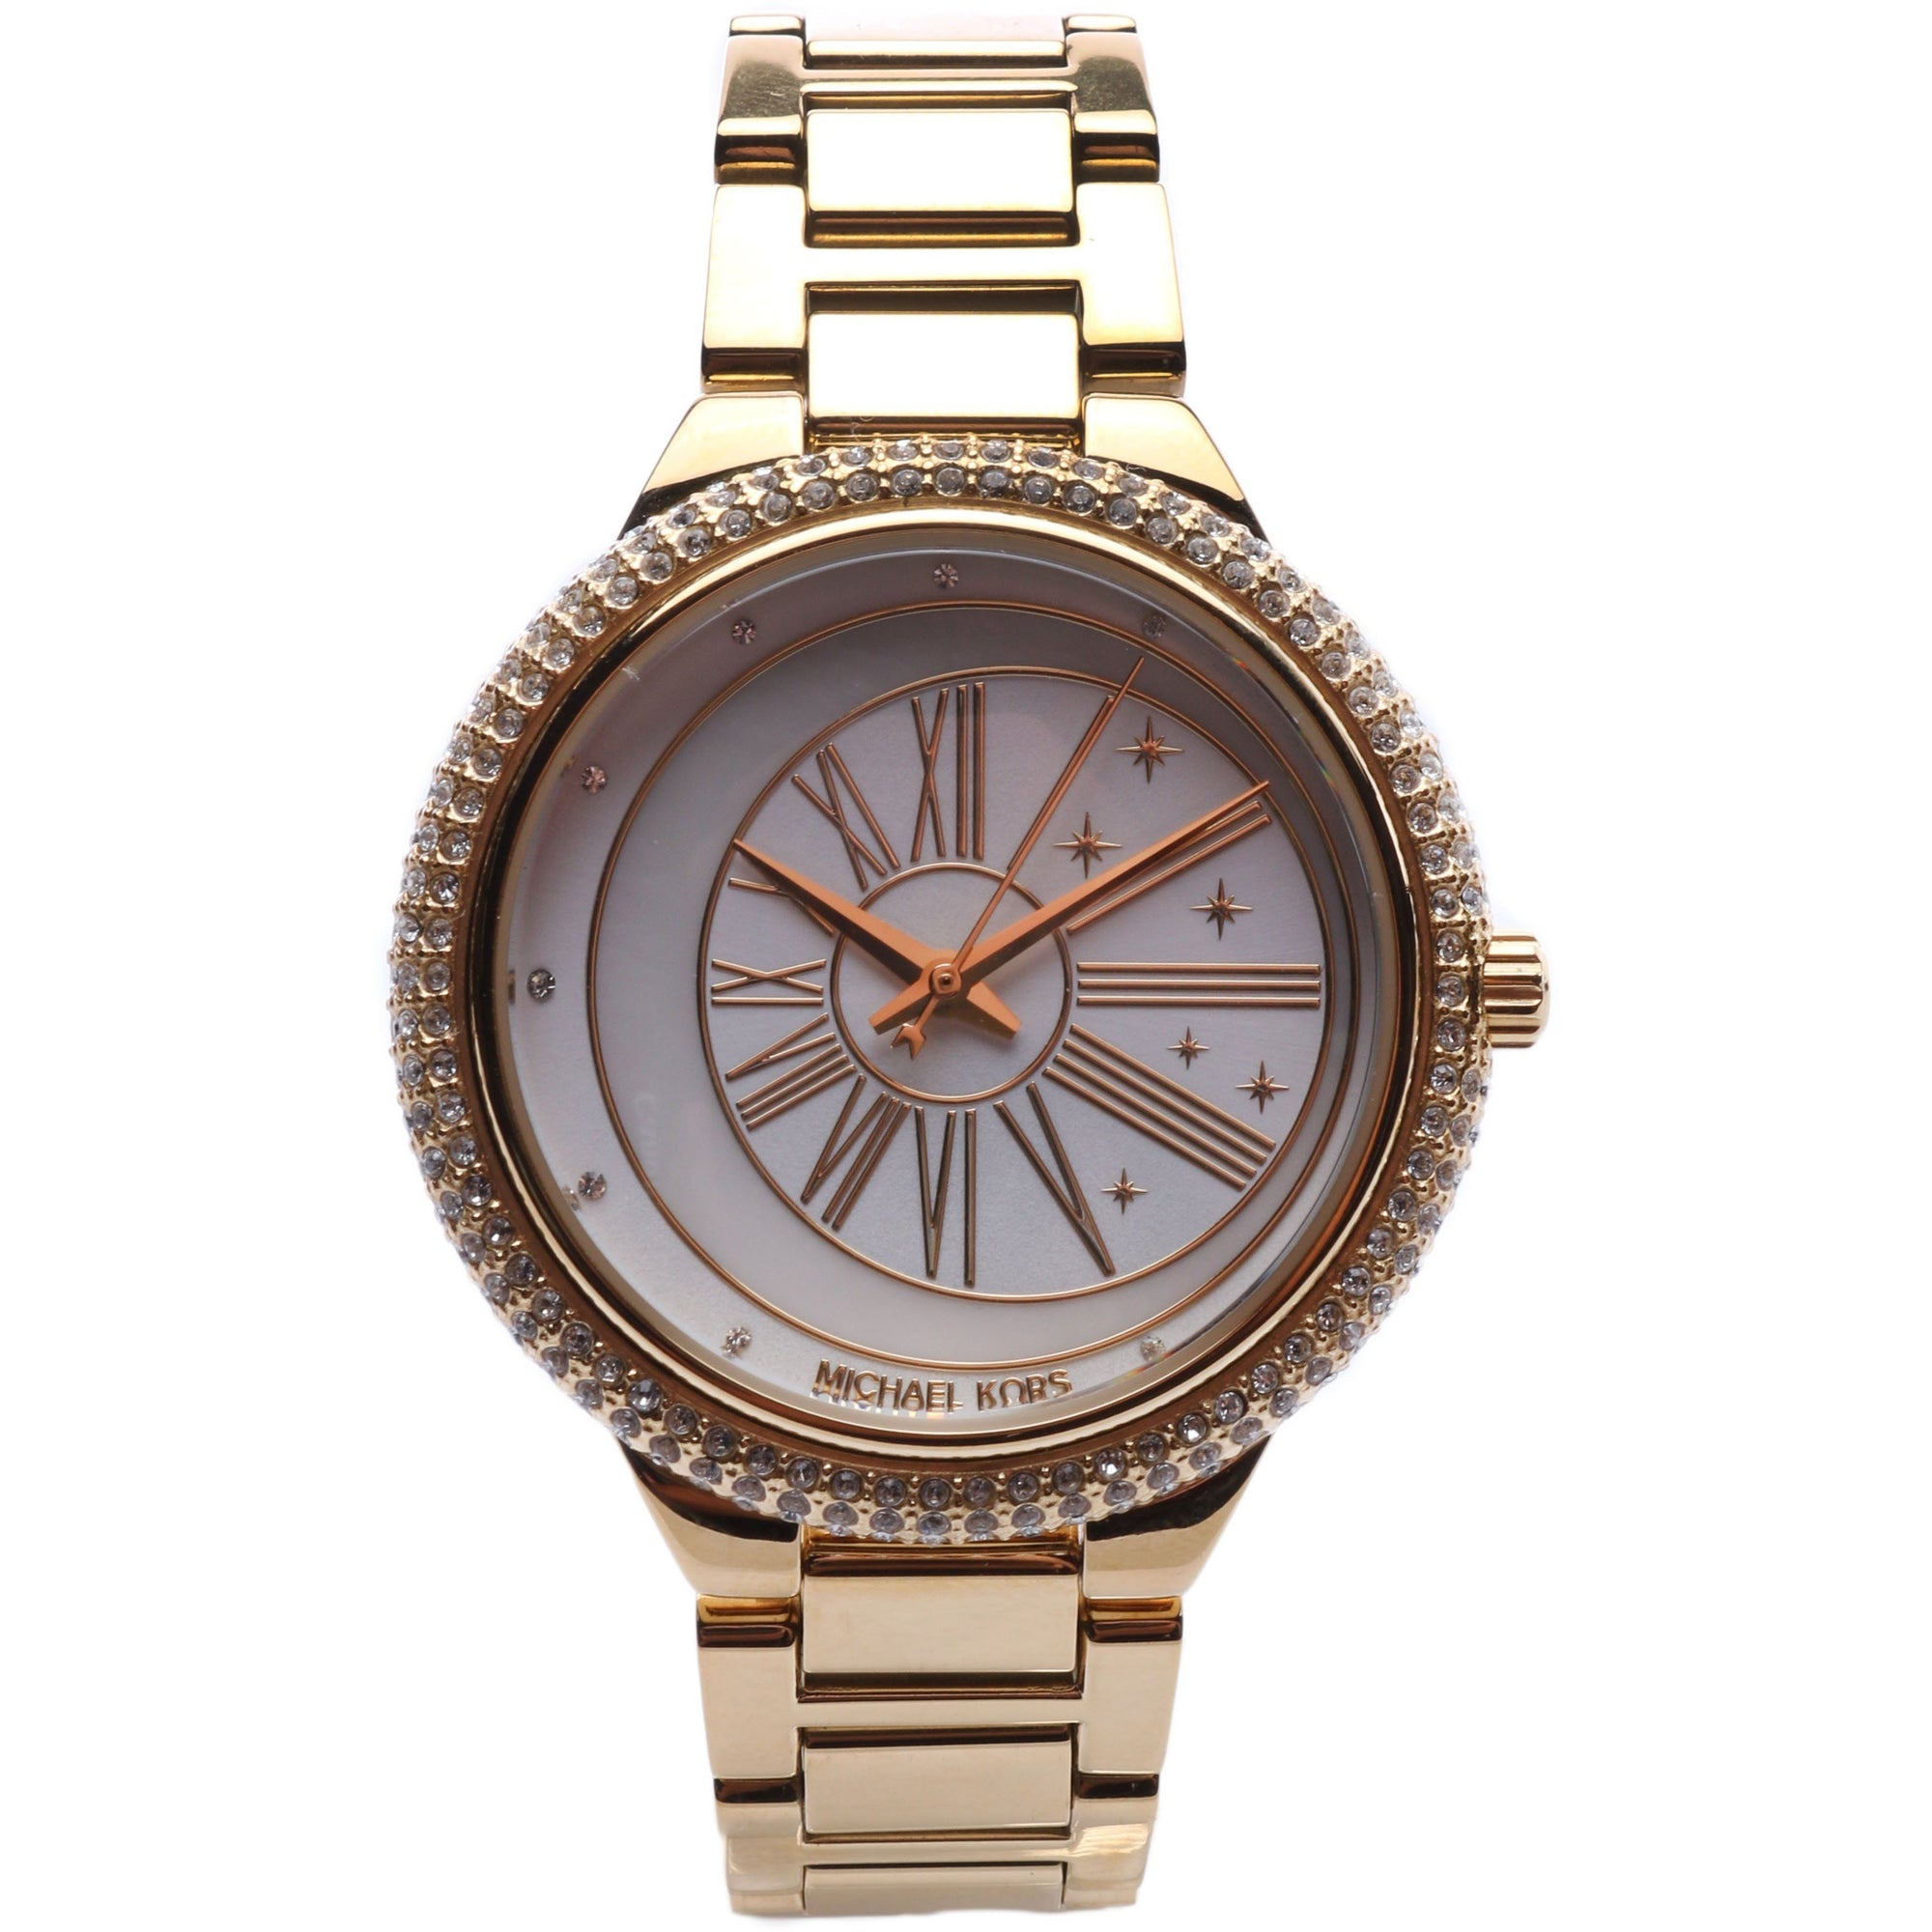 Michael Kors Mk6550 WATCH Michael Kors